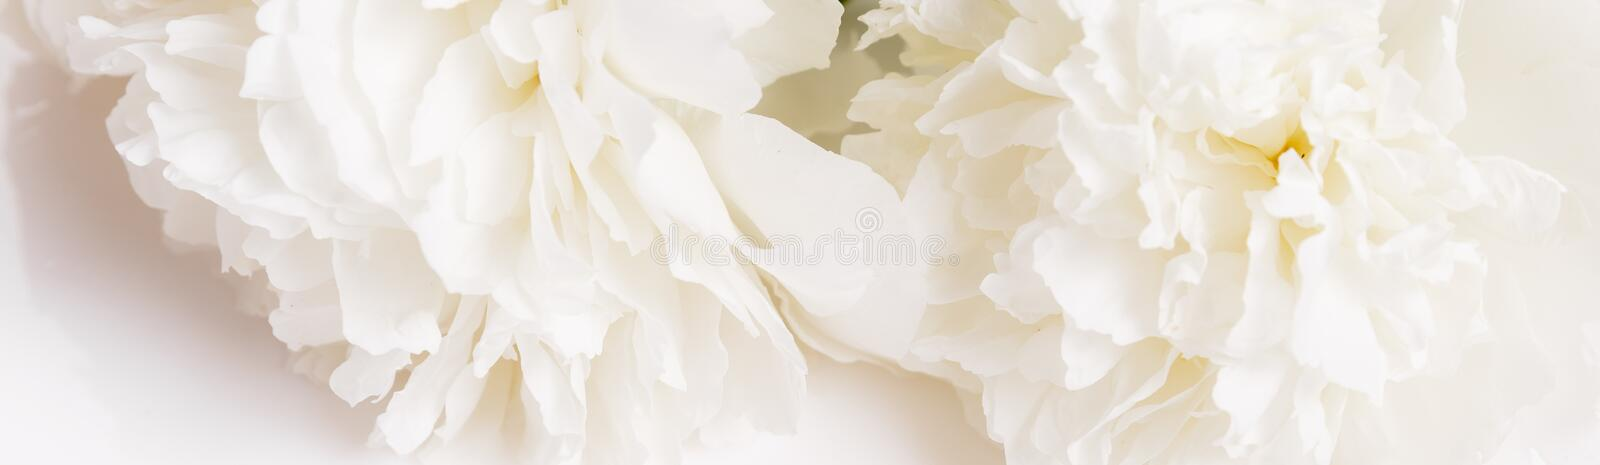 Romantic banner, delicate white peonies flowers close-up. Fragrant pink petals stock photos